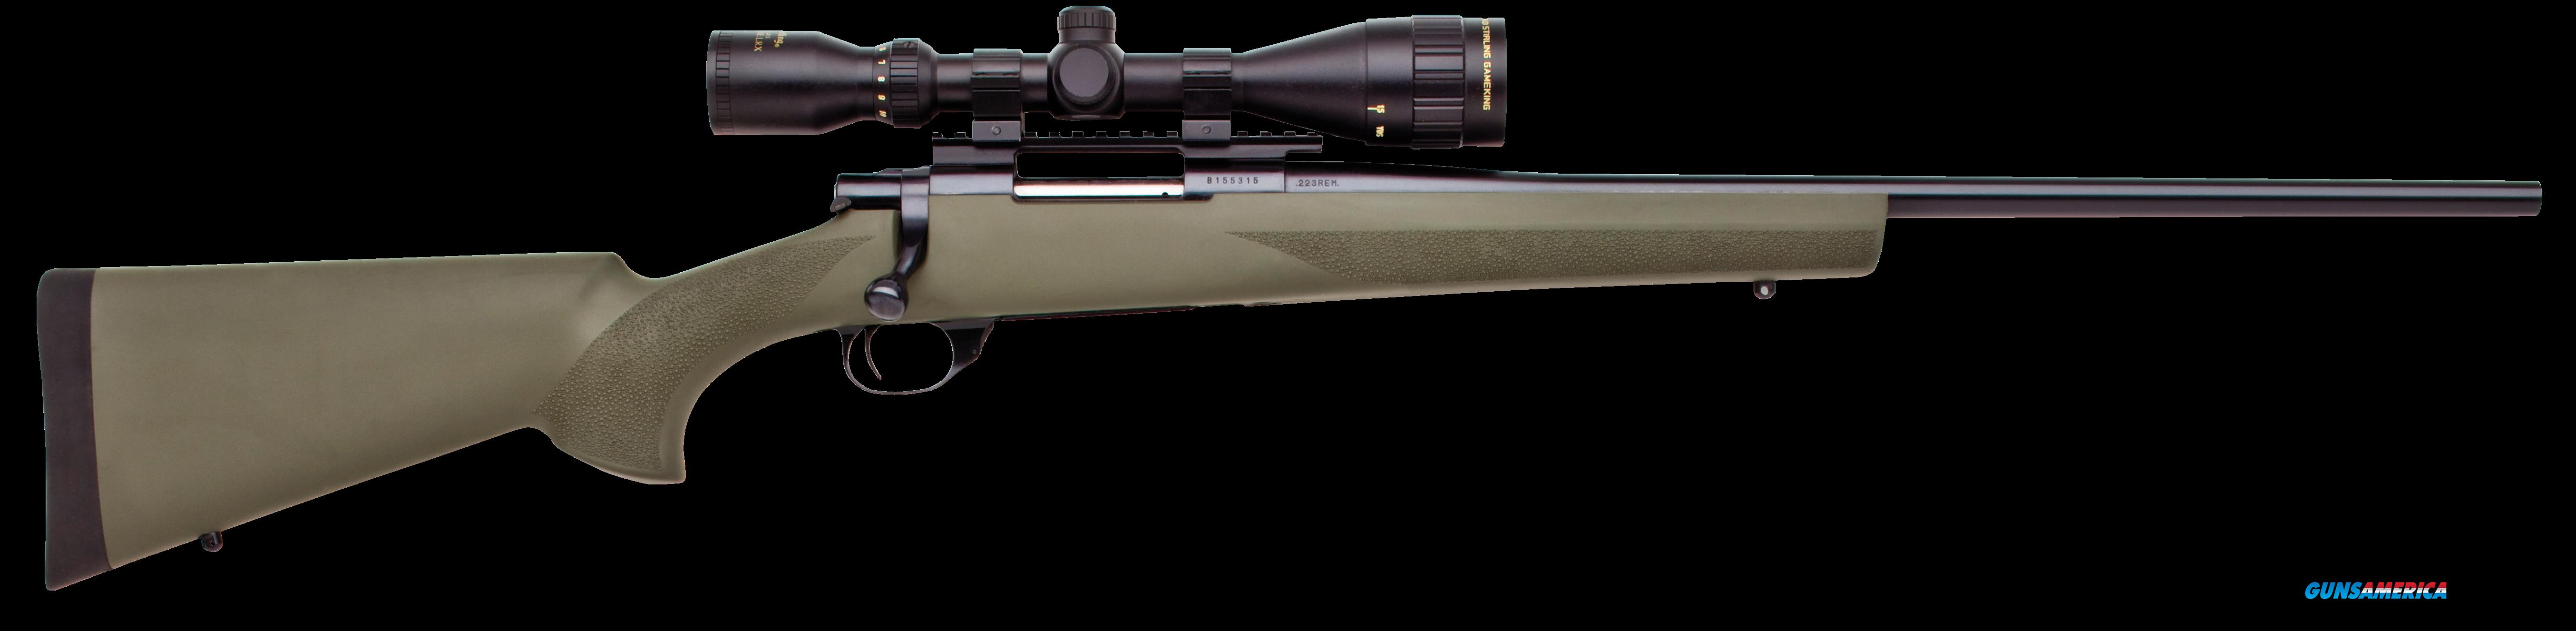 "Howa HGT91228+ Hogue Targetmaster Scope Package Bolt 22-250 Remington 20"" HB 5+1 Hogue Overmolded  Guns > Rifles > H Misc Rifles"